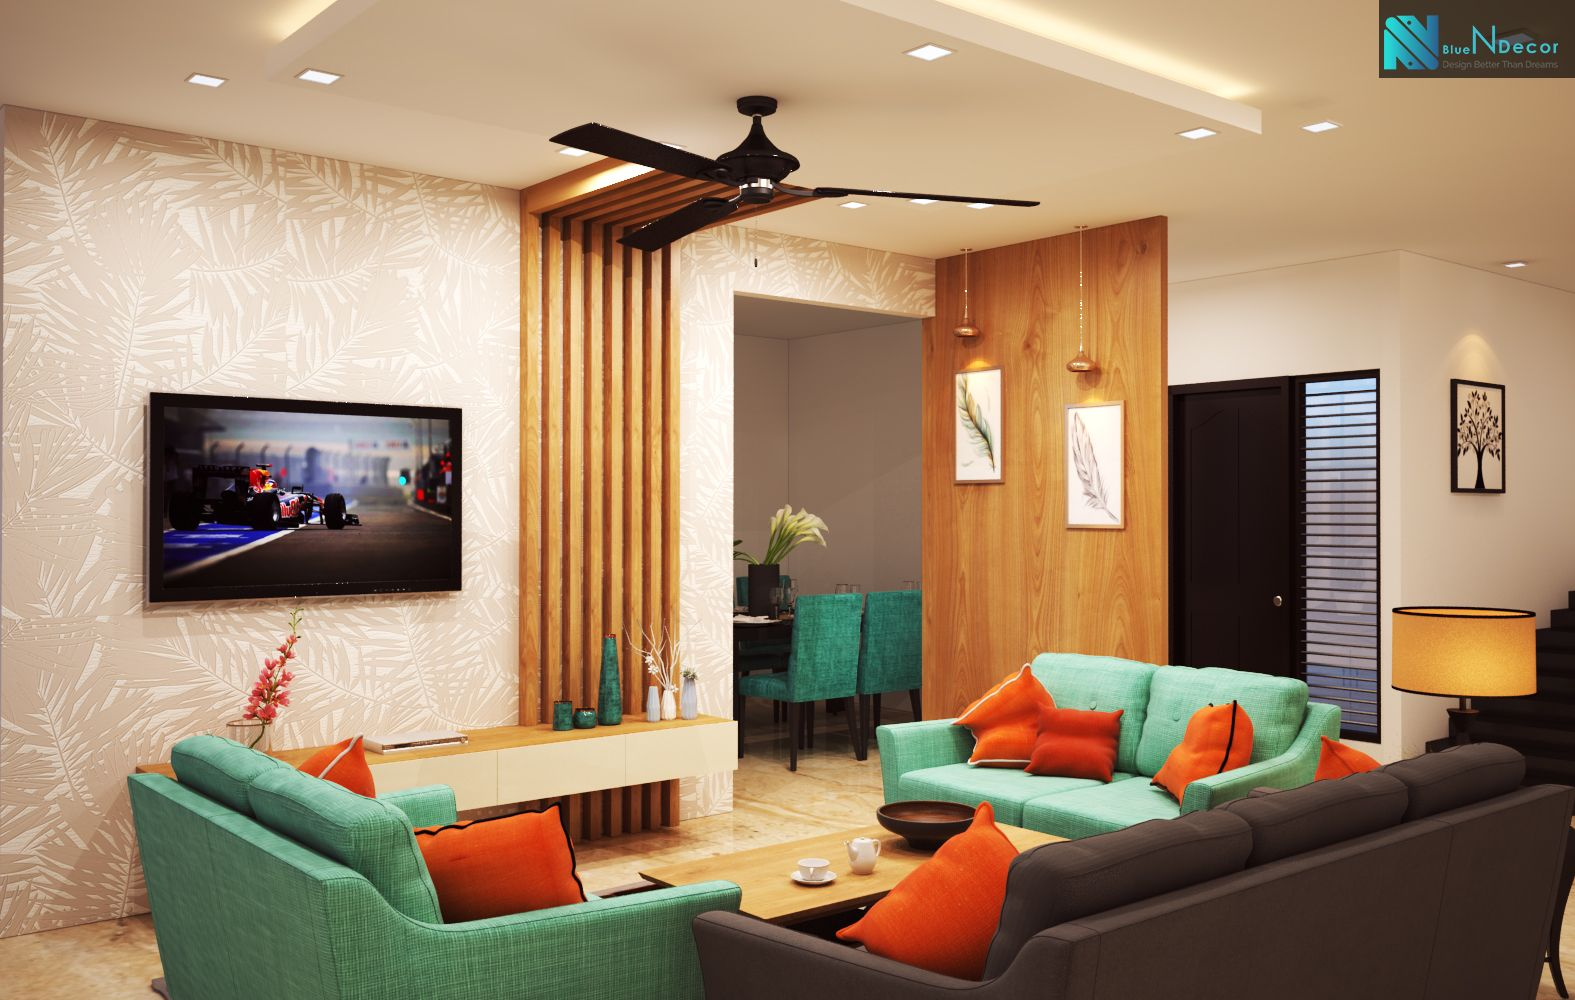 1bhk Interiors For Your Home Bluendecor Best Interior Inte